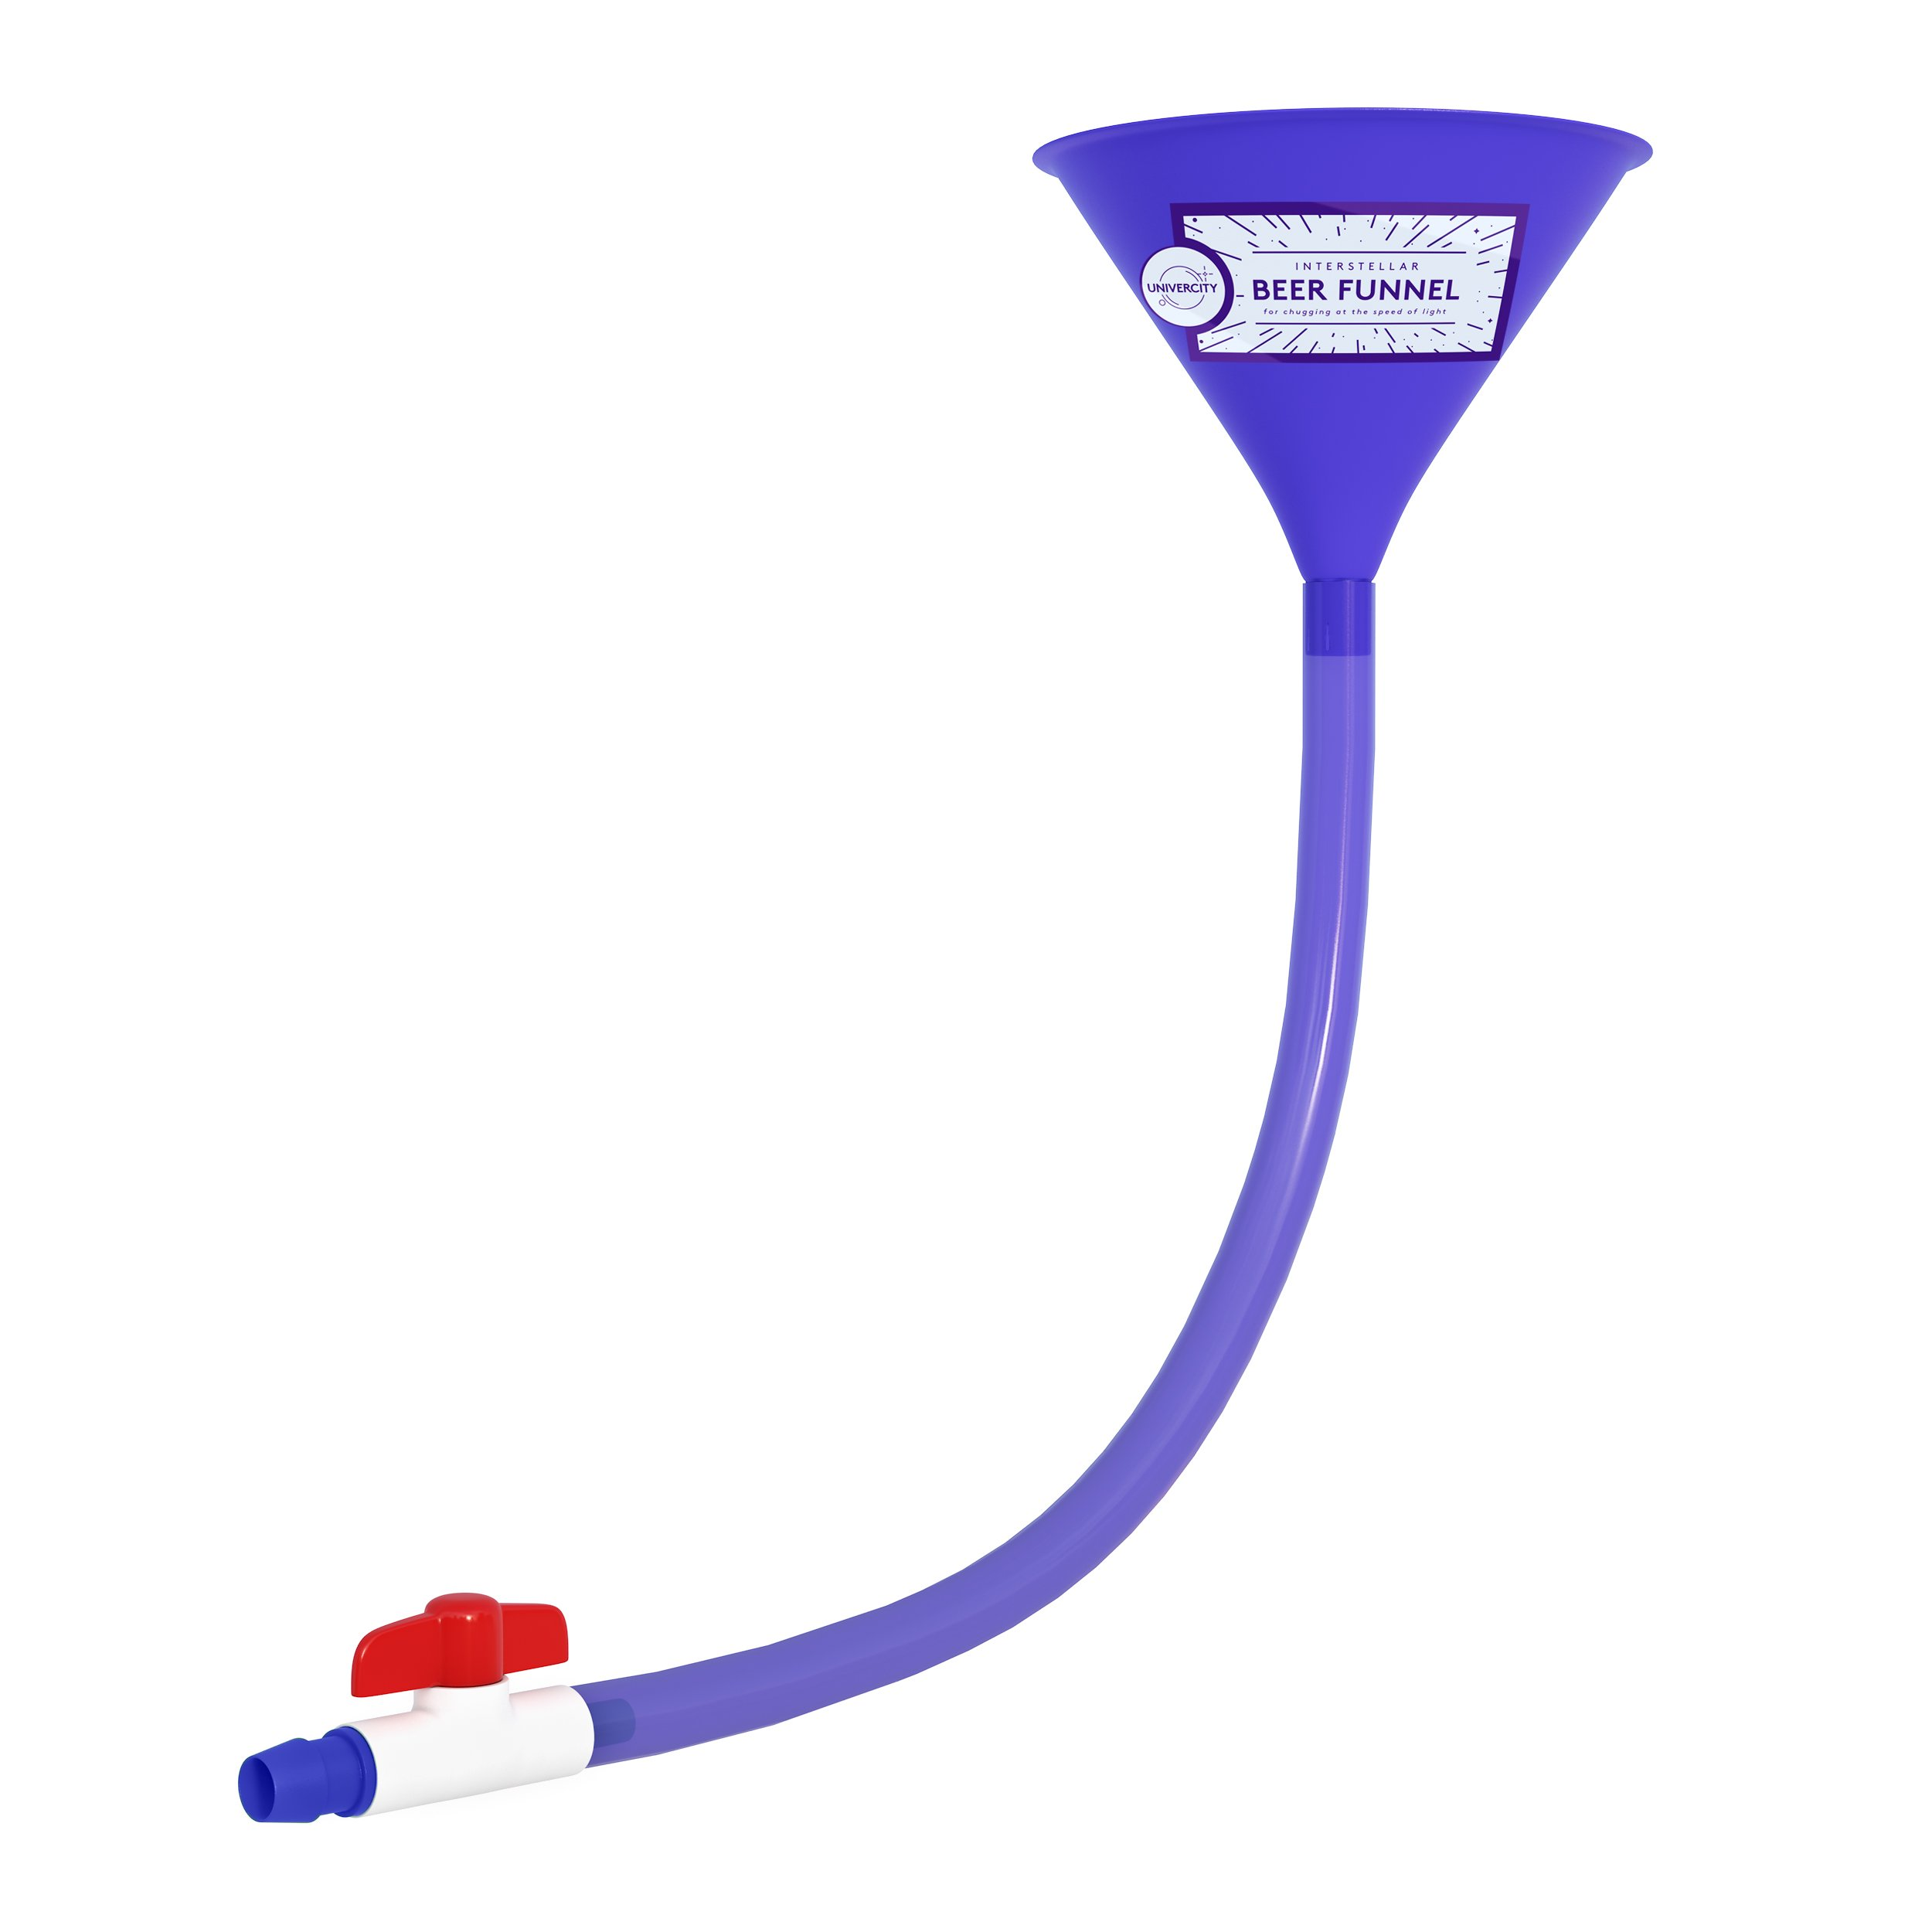 Beer Bong with Valve - Best Beer Funnel for College Parties - 2 Foot Blue Beer Bong - by Univercity by Univercity